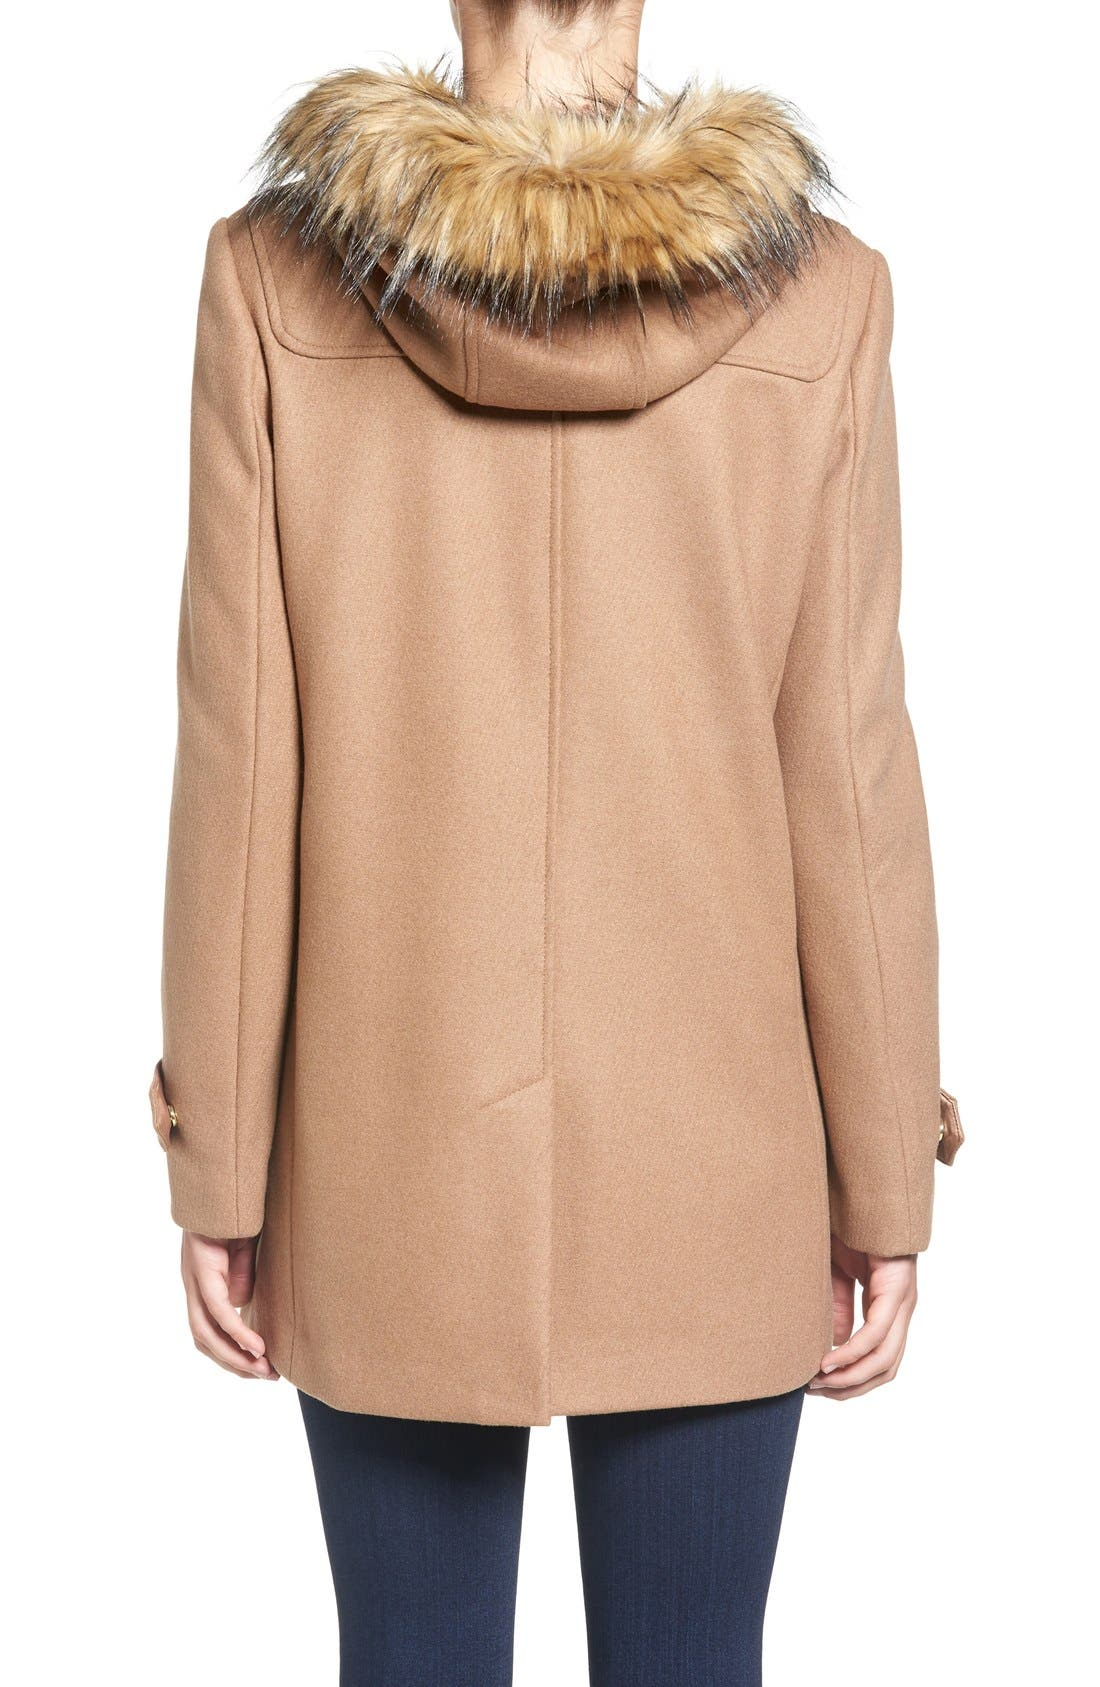 Cole Haan Hooded Duffle Coat with Faux Fur Trim,                             Alternate thumbnail 2, color,                             Camel